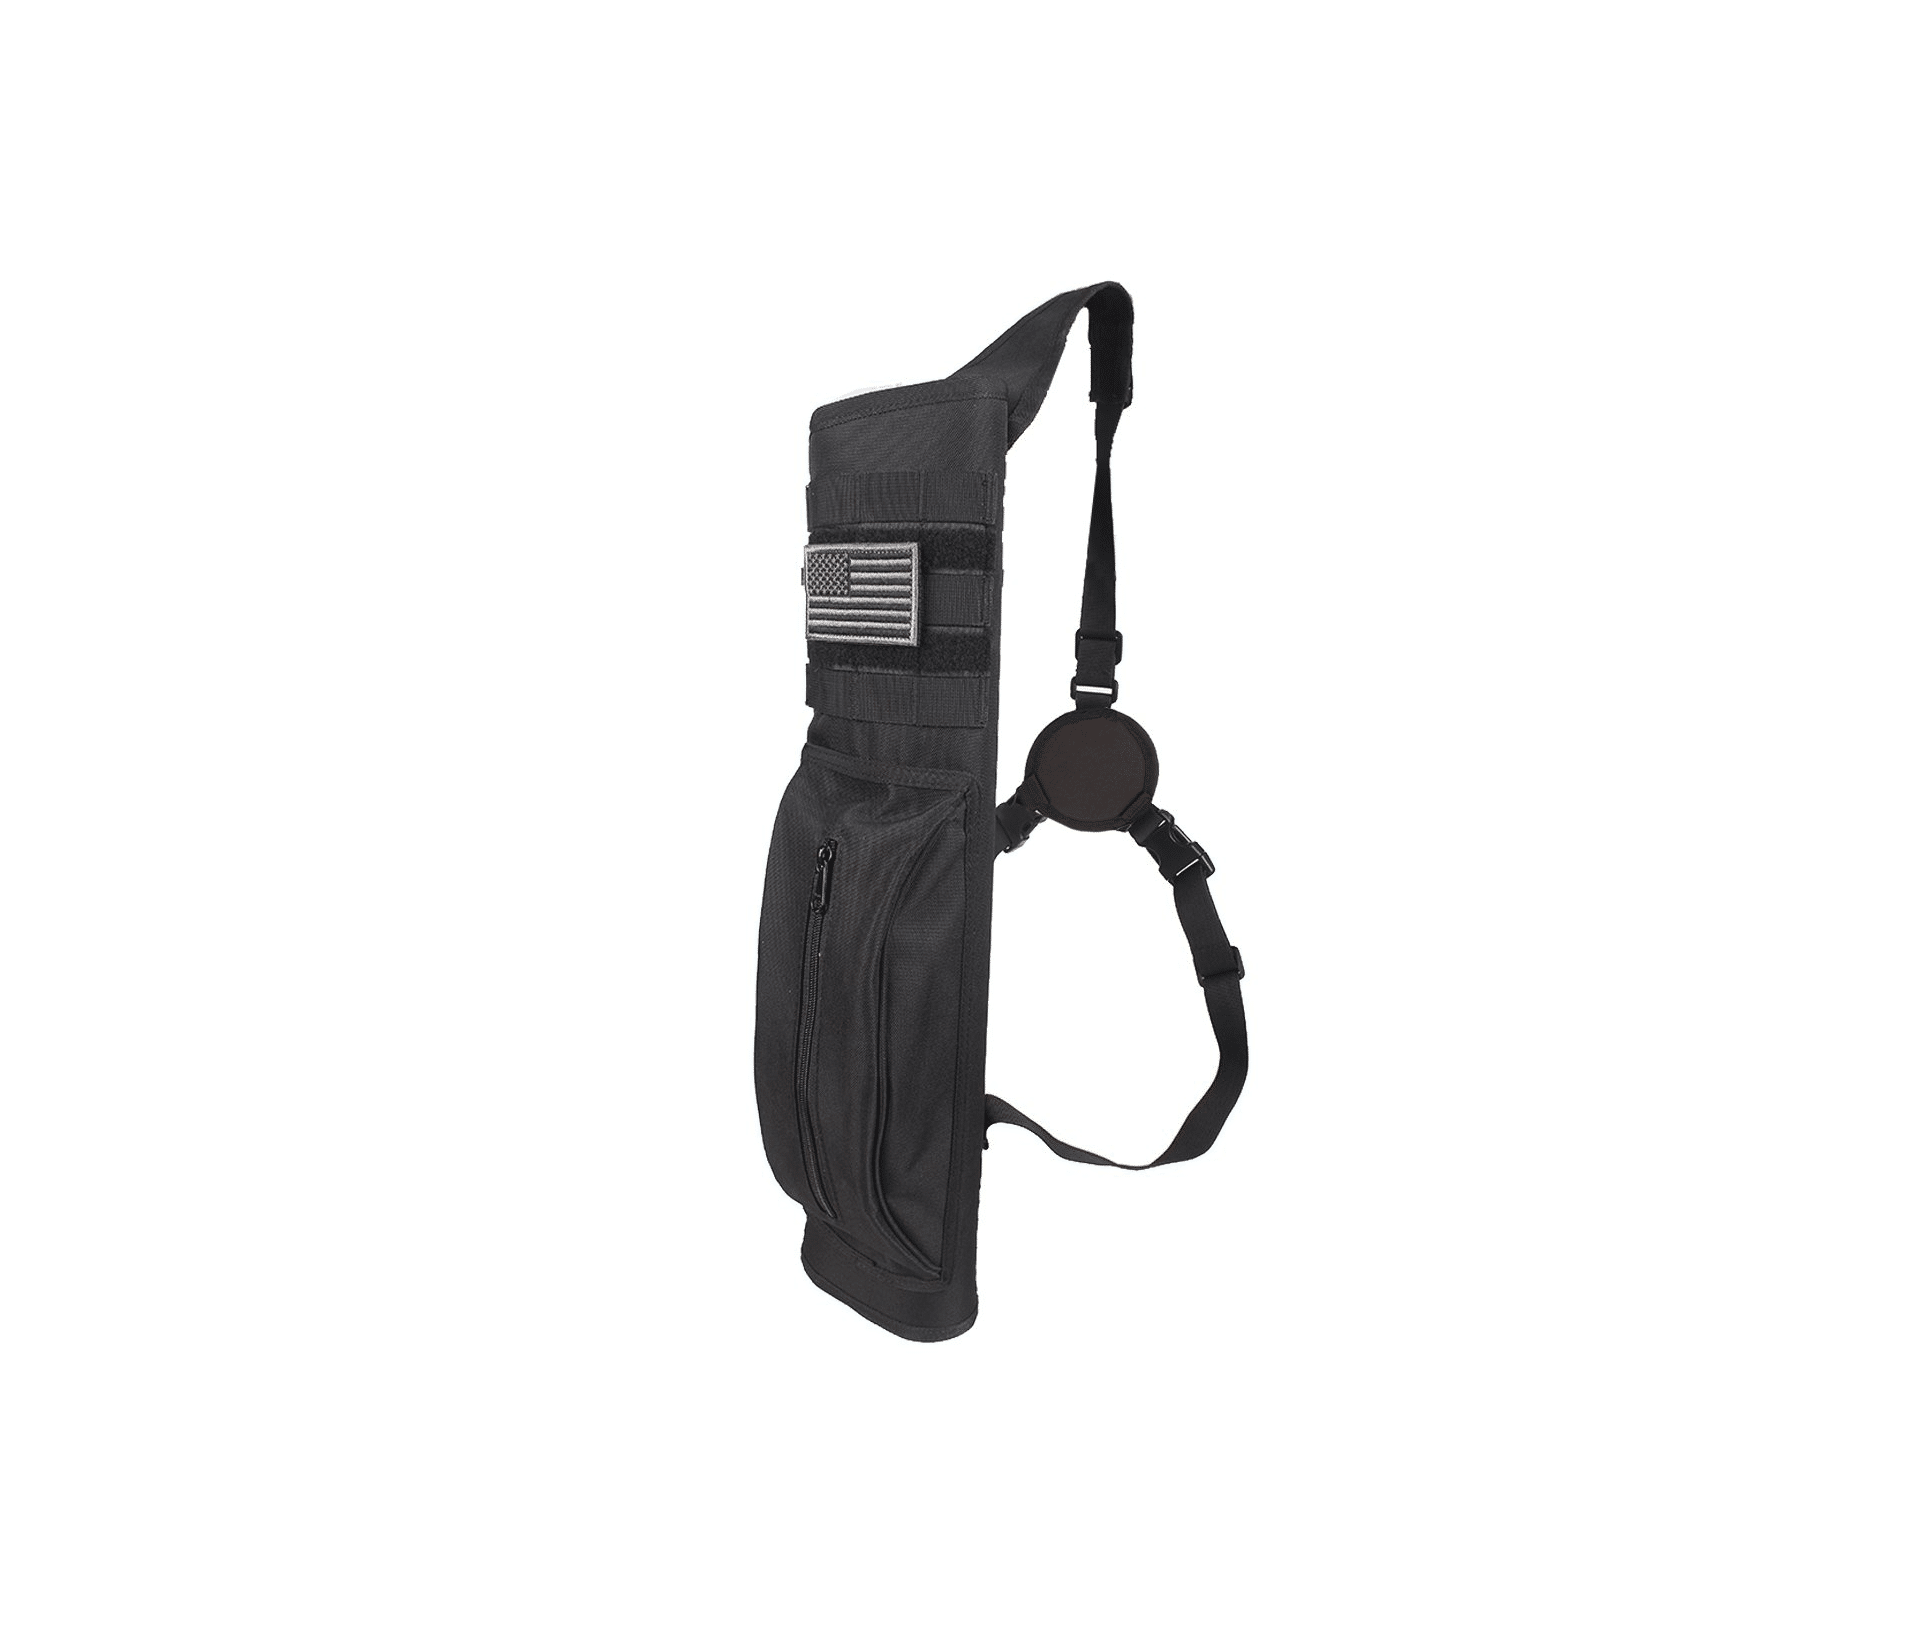 KRATARC Archery Multi Function Heavy Duty Back Arrow Quiver with Molle System Shoulder Hanged Target Shooting Quiver for Arrows Black for Right Handed 1